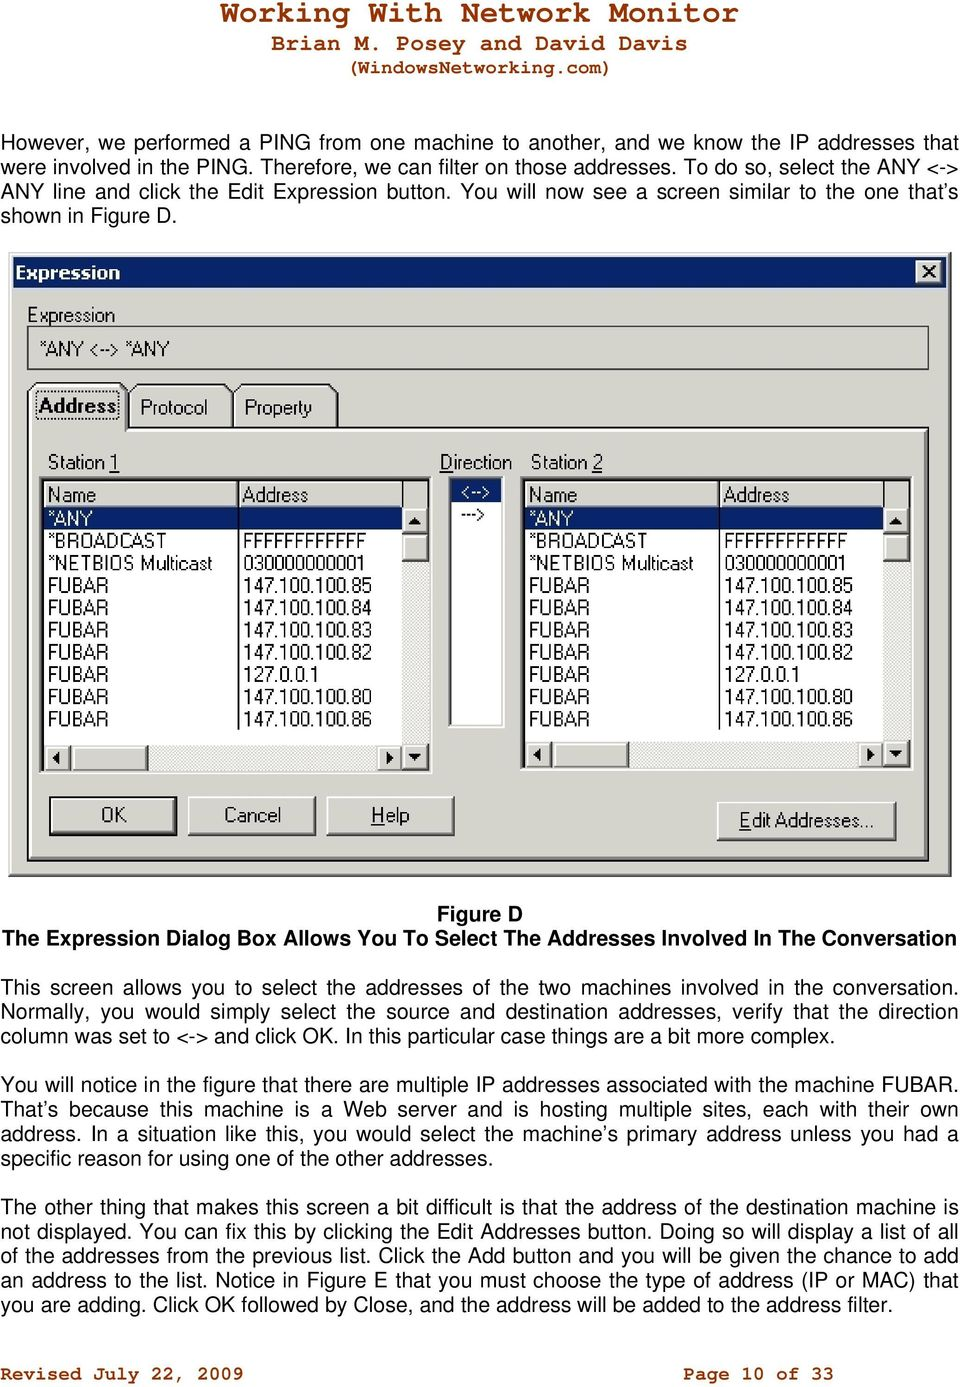 Figure D The Expression Dialog Box Allows You To Select The Addresses Involved In The Conversation This screen allows you to select the addresses of the two machines involved in the conversation.